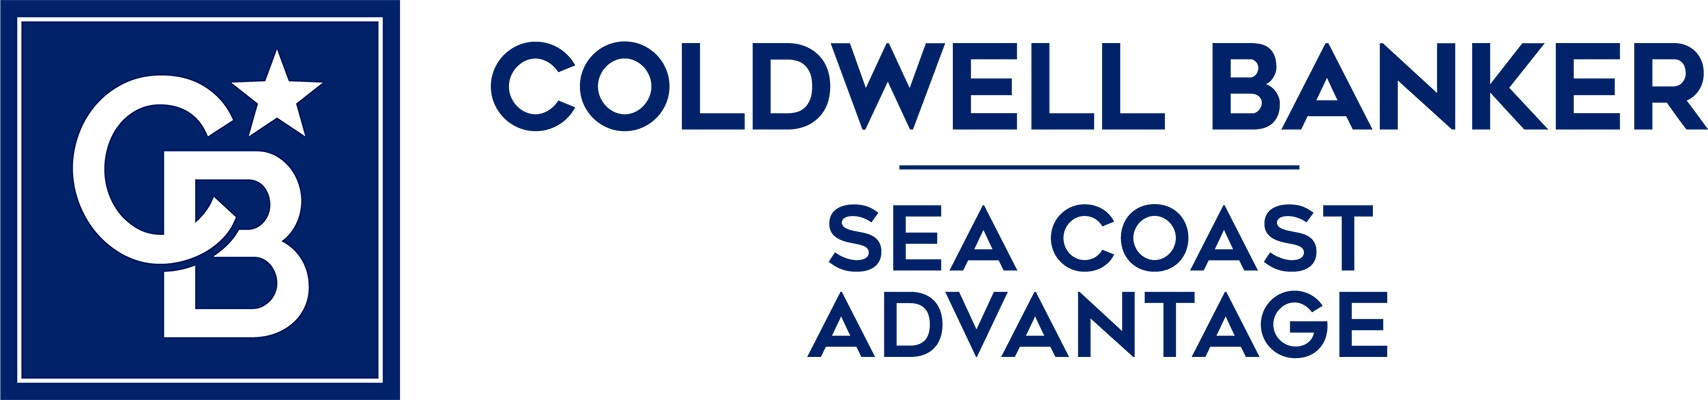 Laura Melloer - Coldwell Banker Sea Coast Advantage Logo